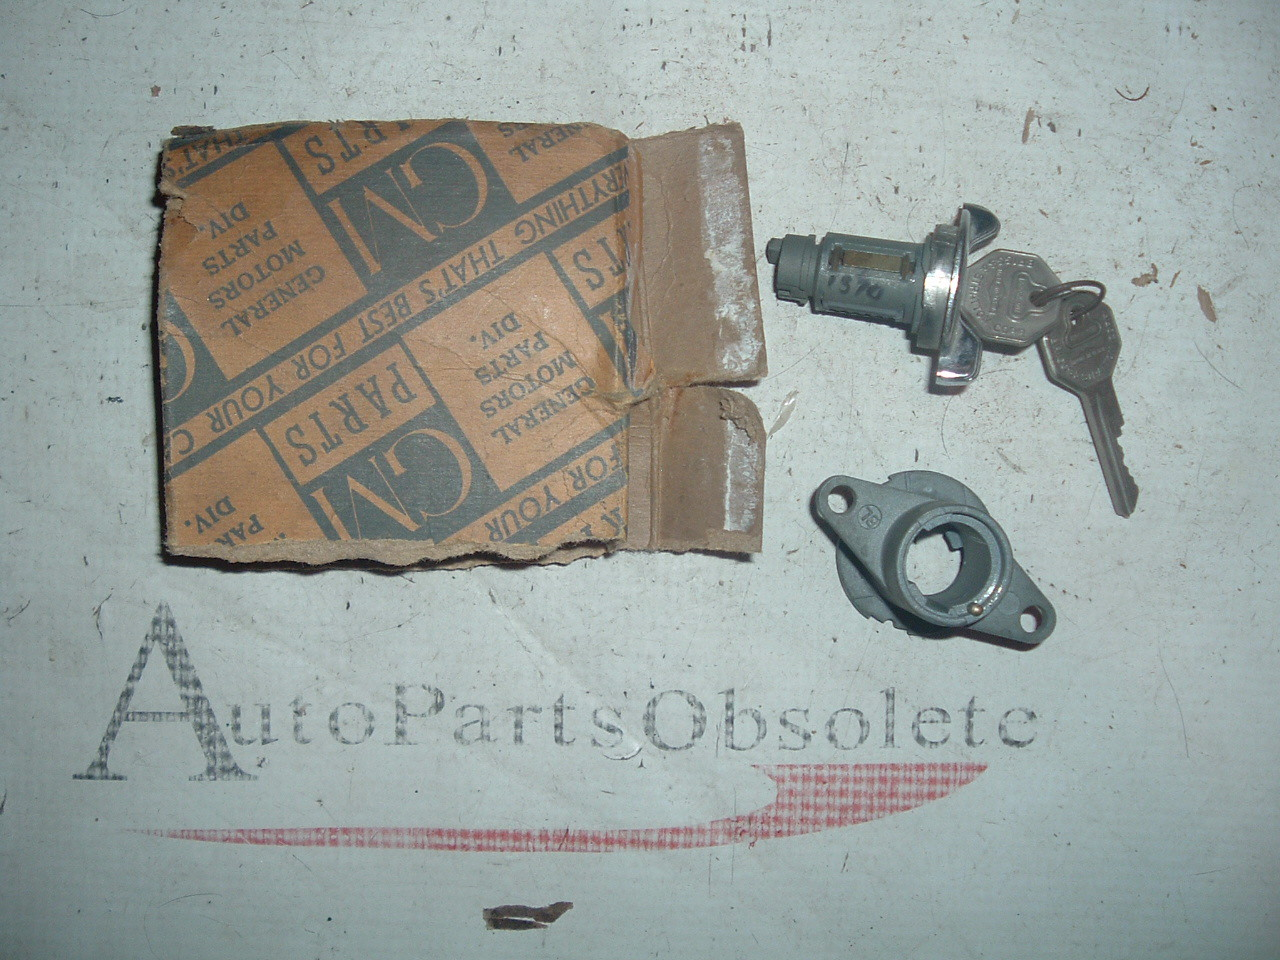 1941 42 46 47 48 49 50 51 buick ignition switch w/keys nos gm 1390644 (z 1390644)